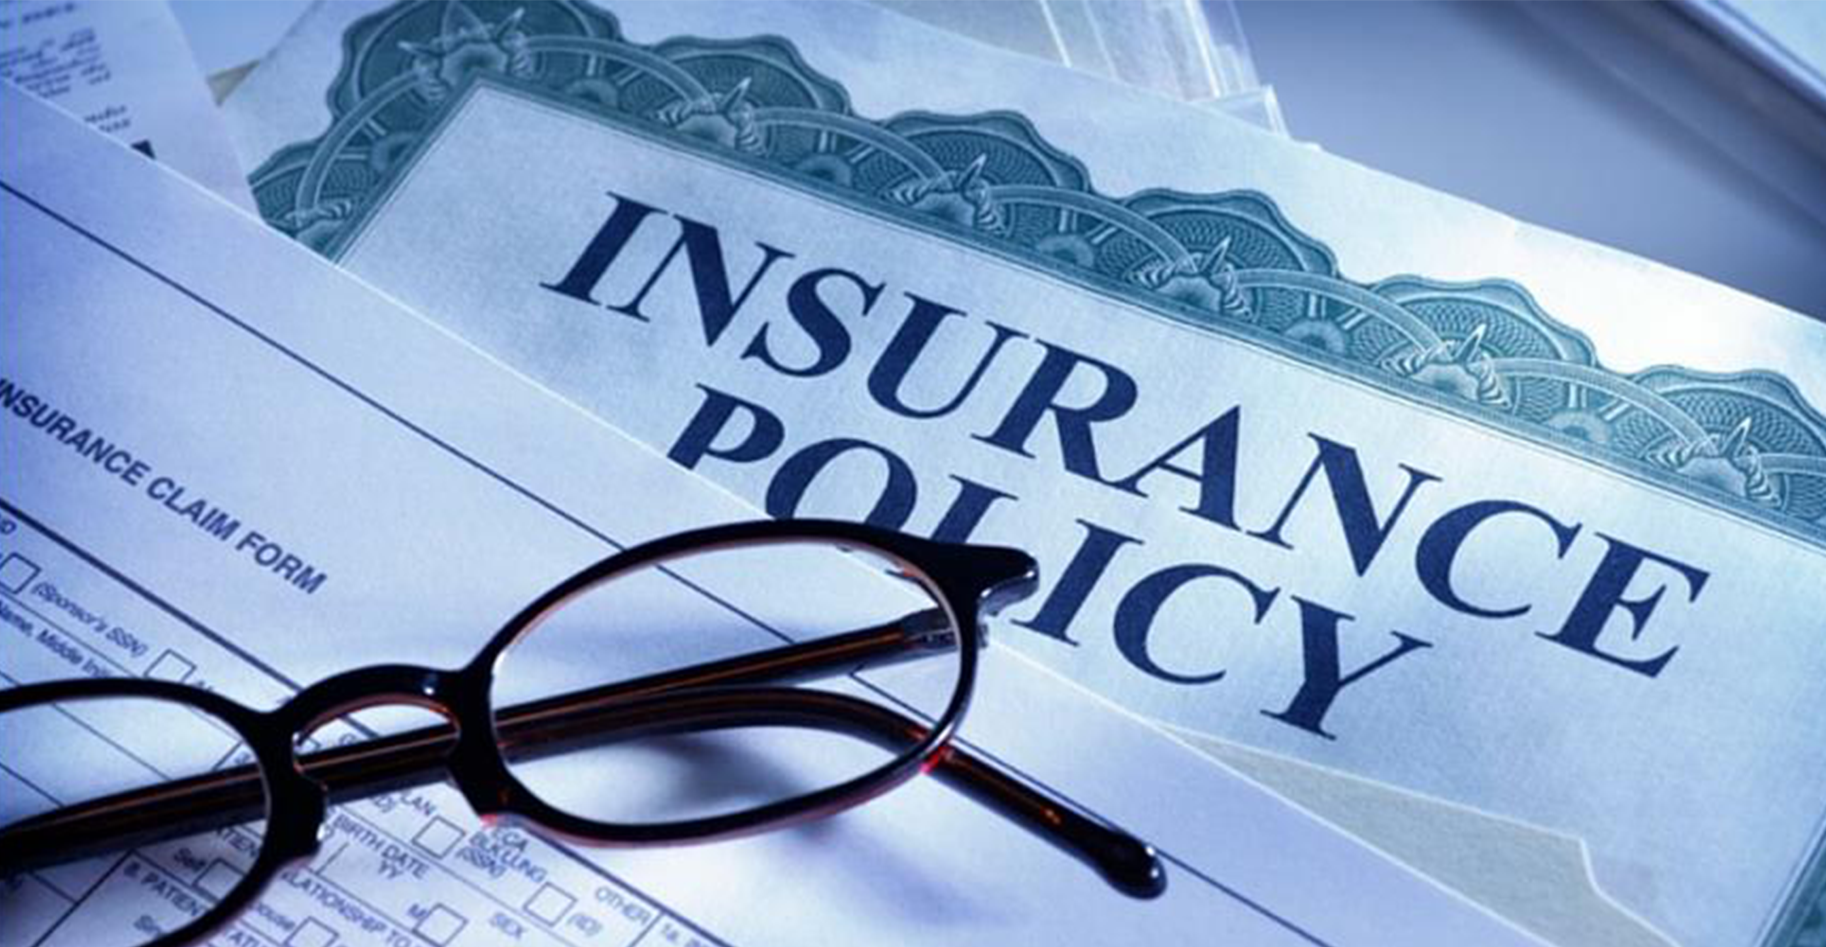 lv travel insurance policy document